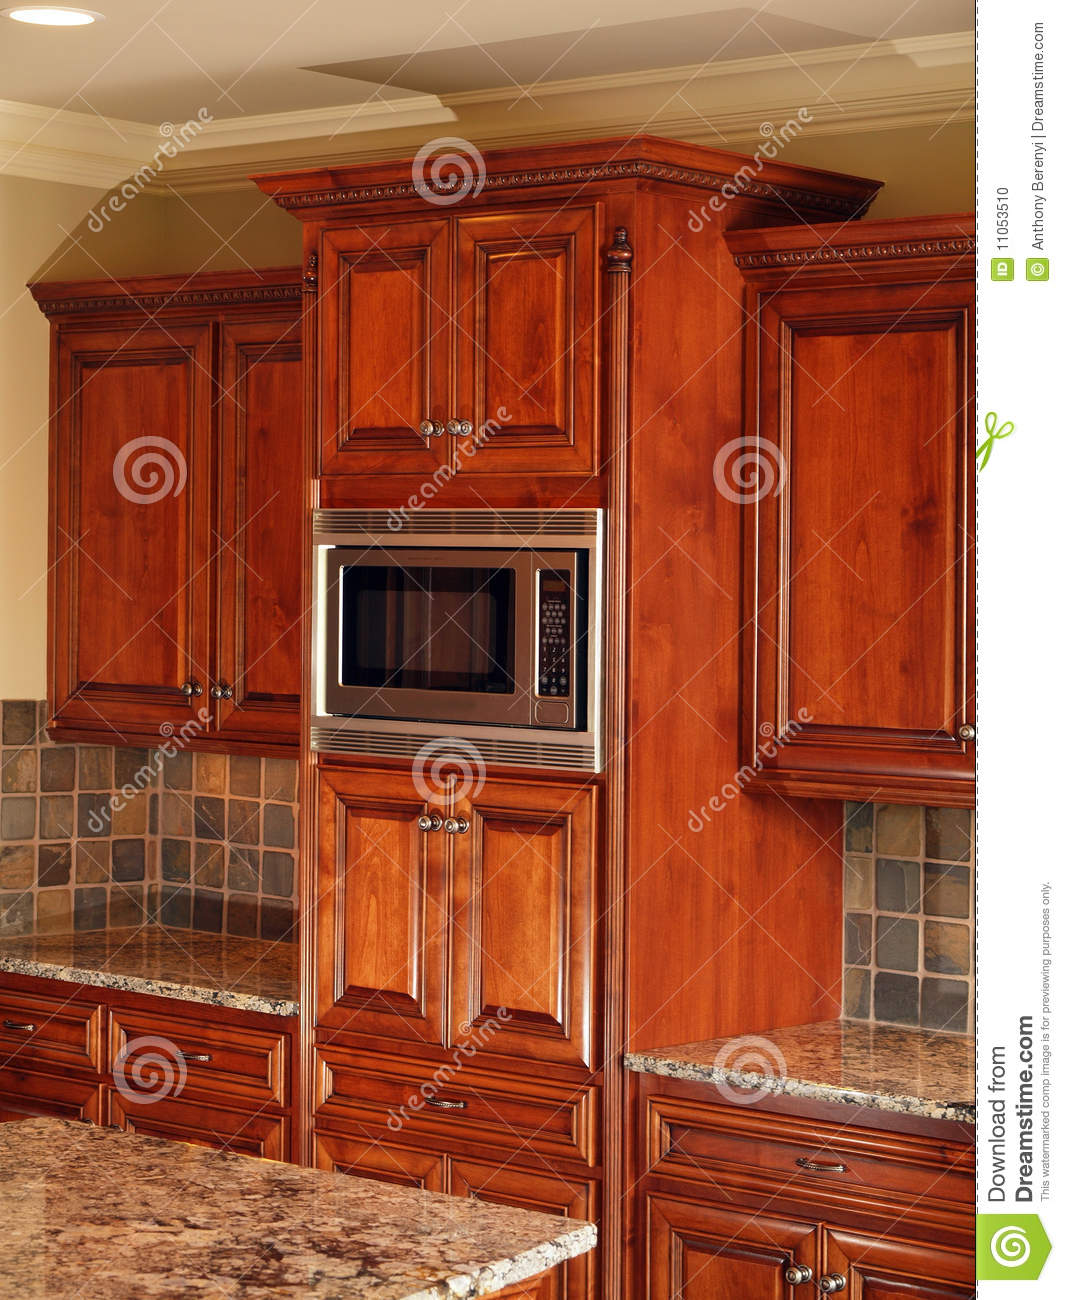 Dark Wood Cabinets Kitchen: Luxury Home Dark Wood Kitchen Cabinet Stock Photo